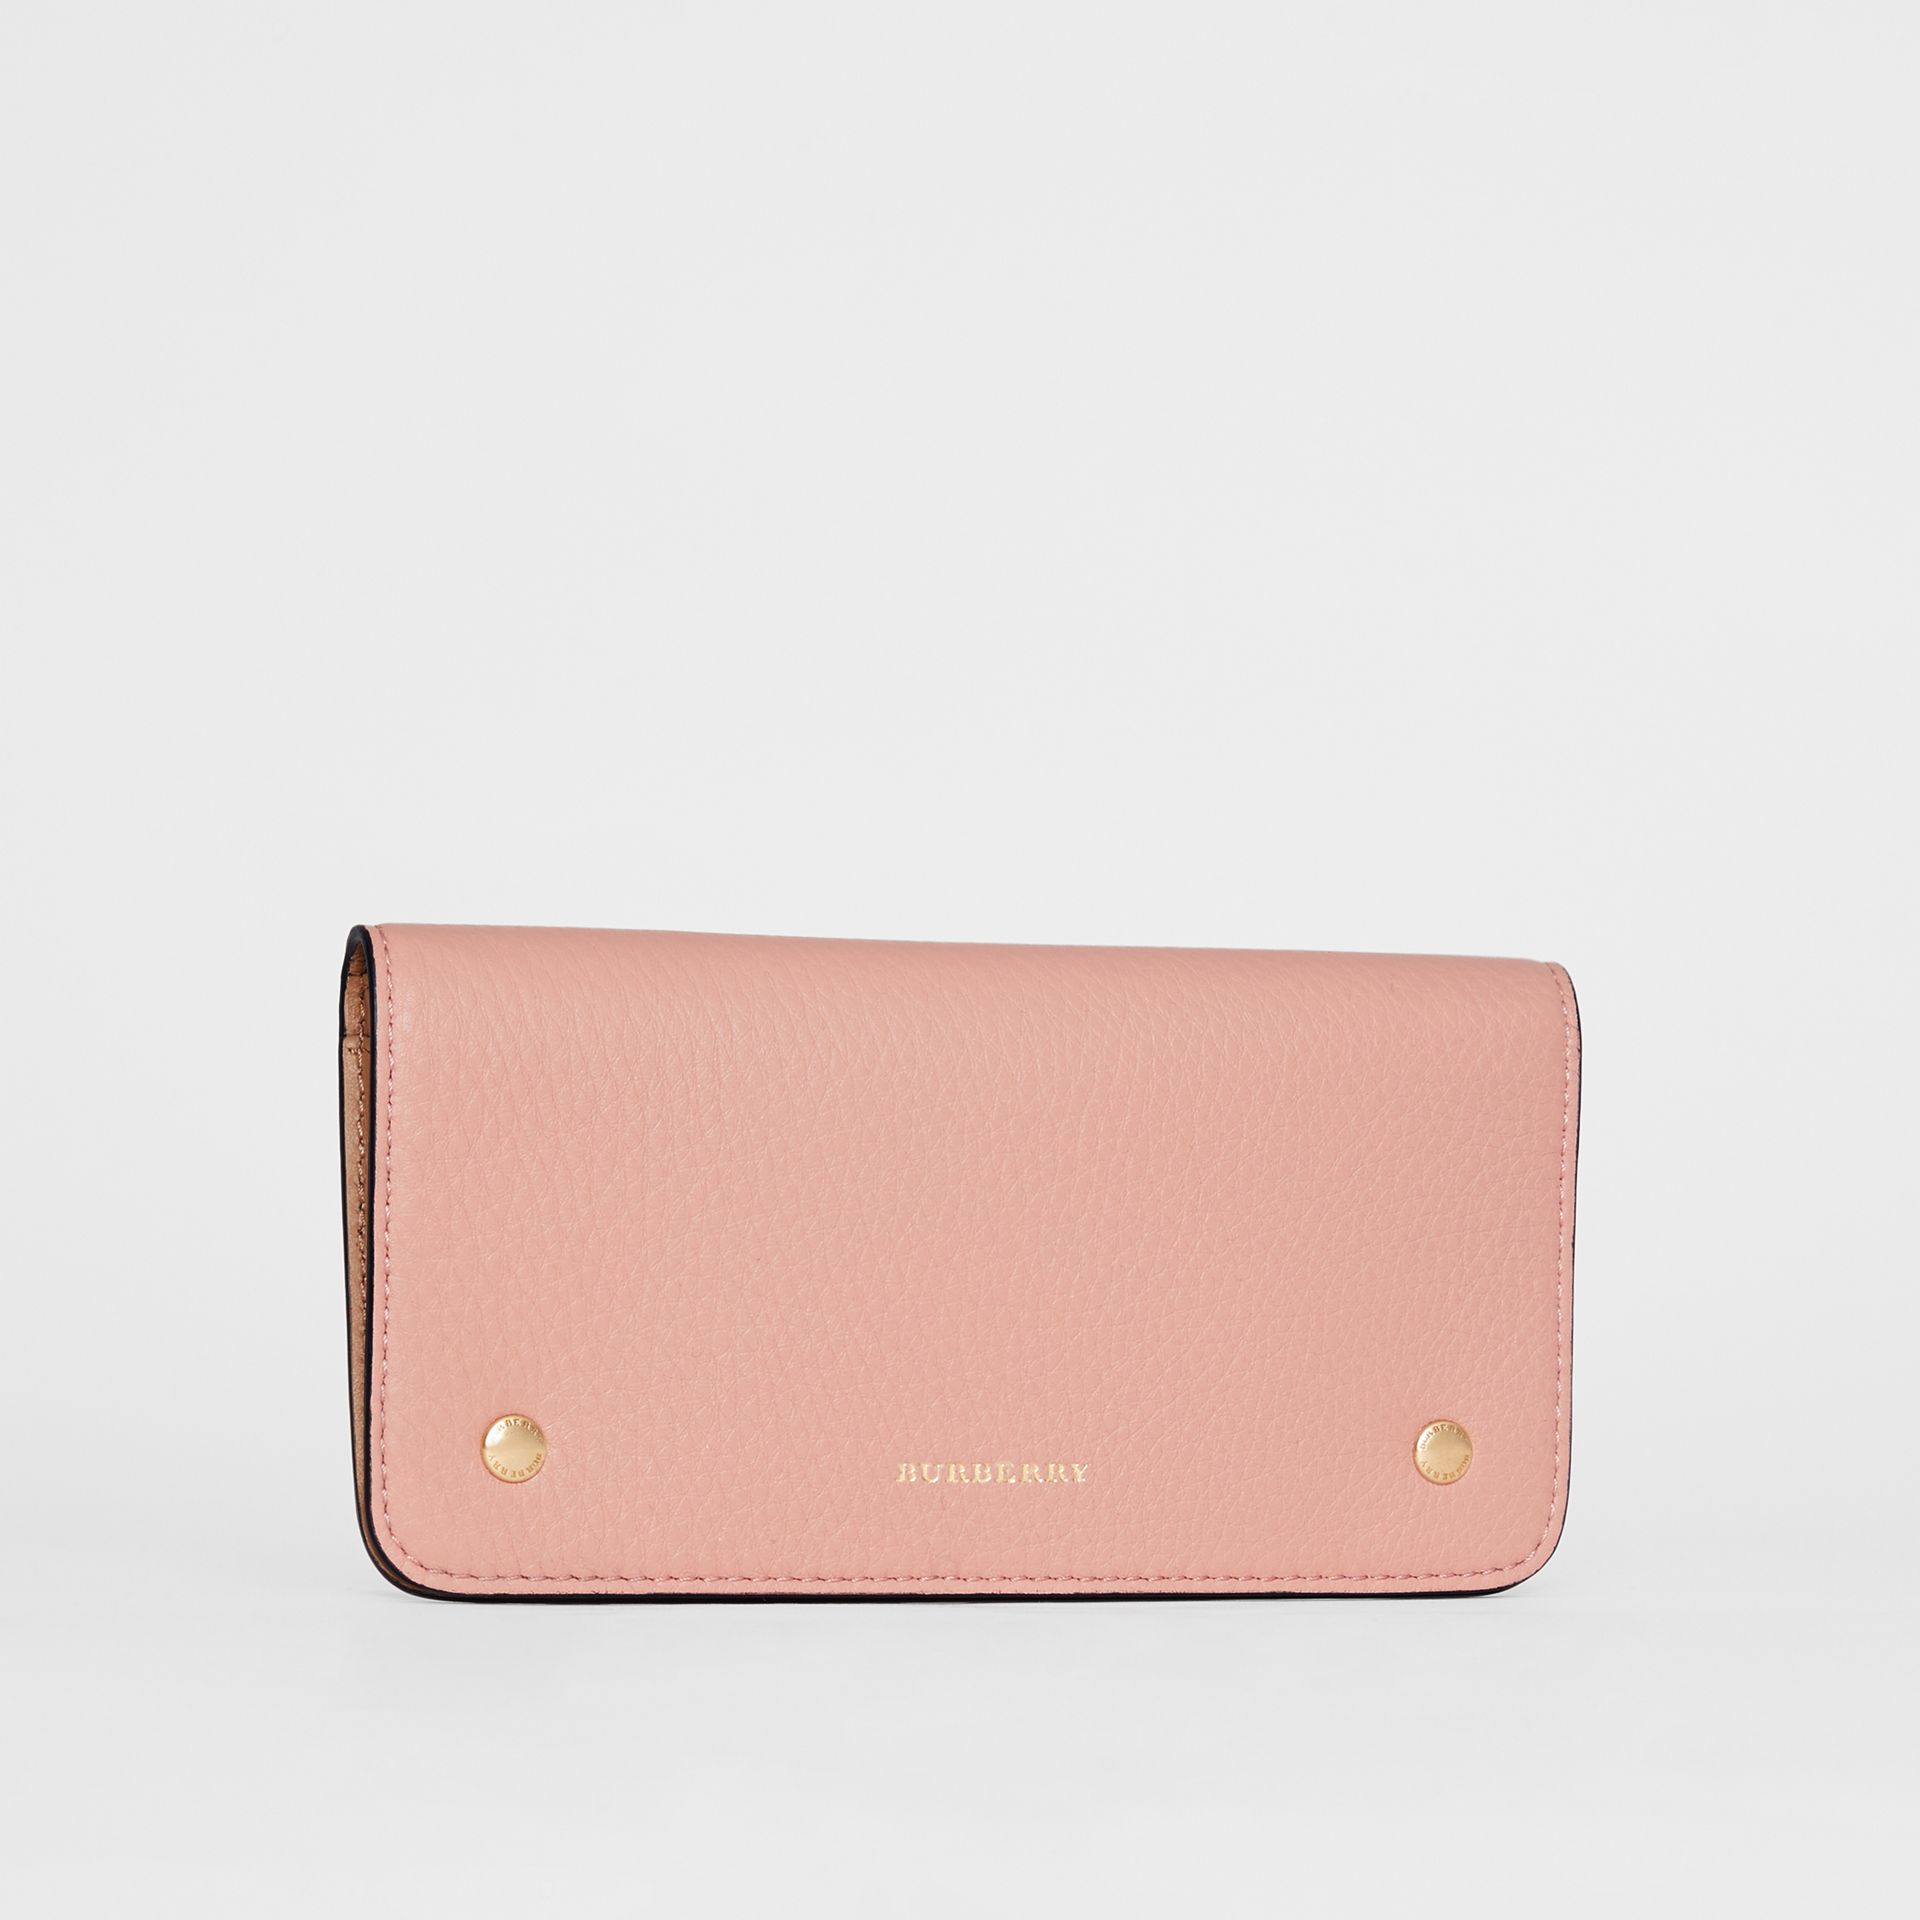 Leather Phone Wallet in Ash Rose - Women | Burberry - gallery image 4